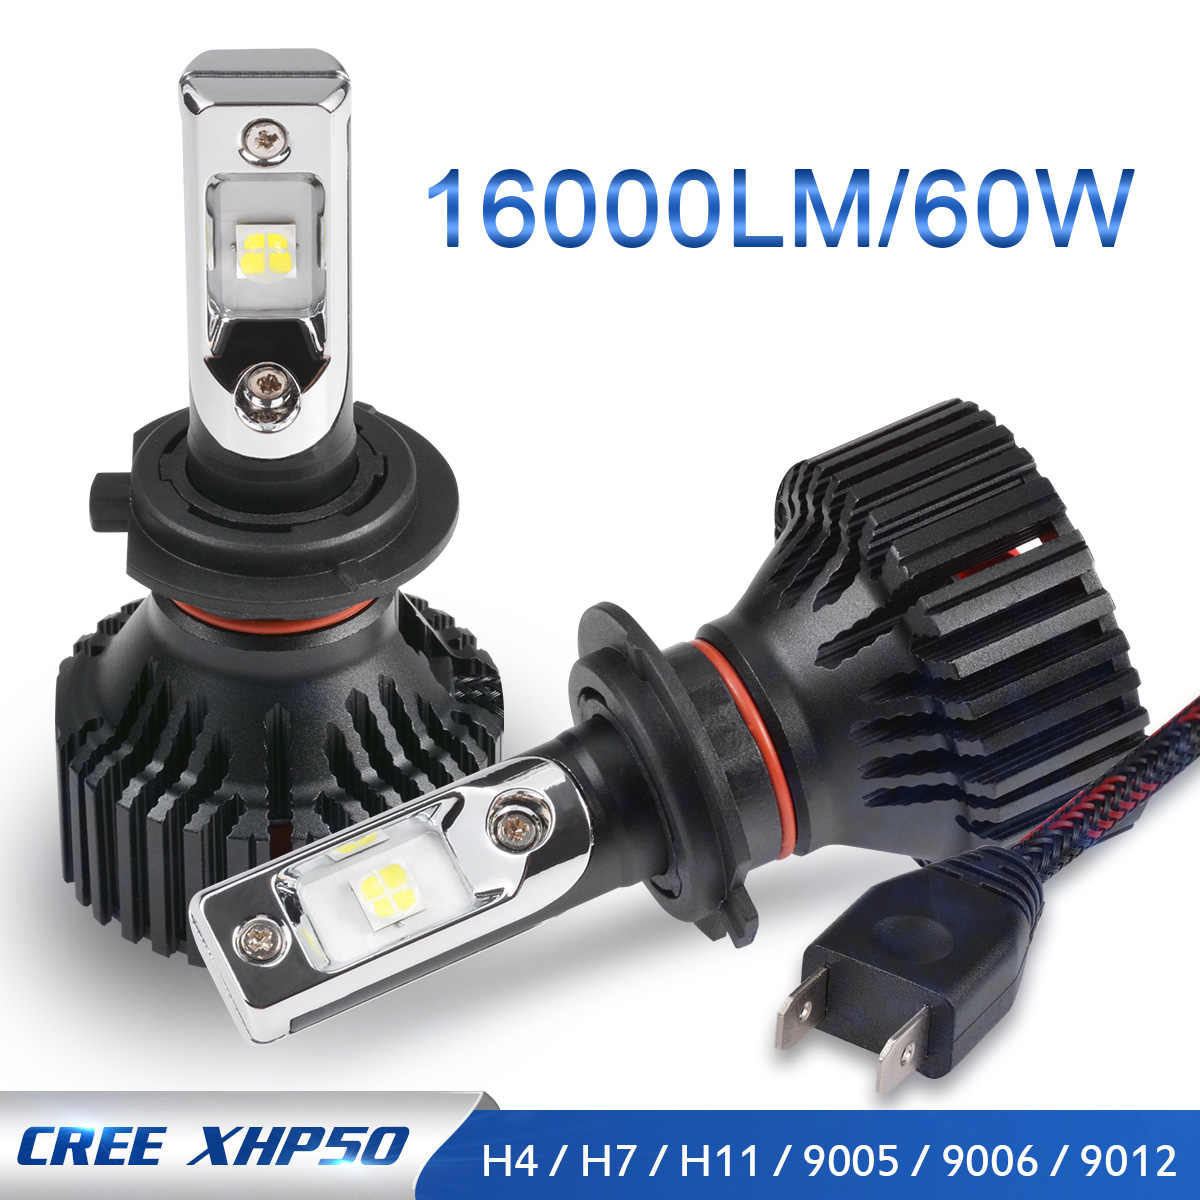 Katur H7 Led Headlight kit Fog Light Lamps XHP50 12V 24V 60W 16000Lm 360 Degree Lighting H4 H11 H16 H13 PSX24W PSX26W P13 Led